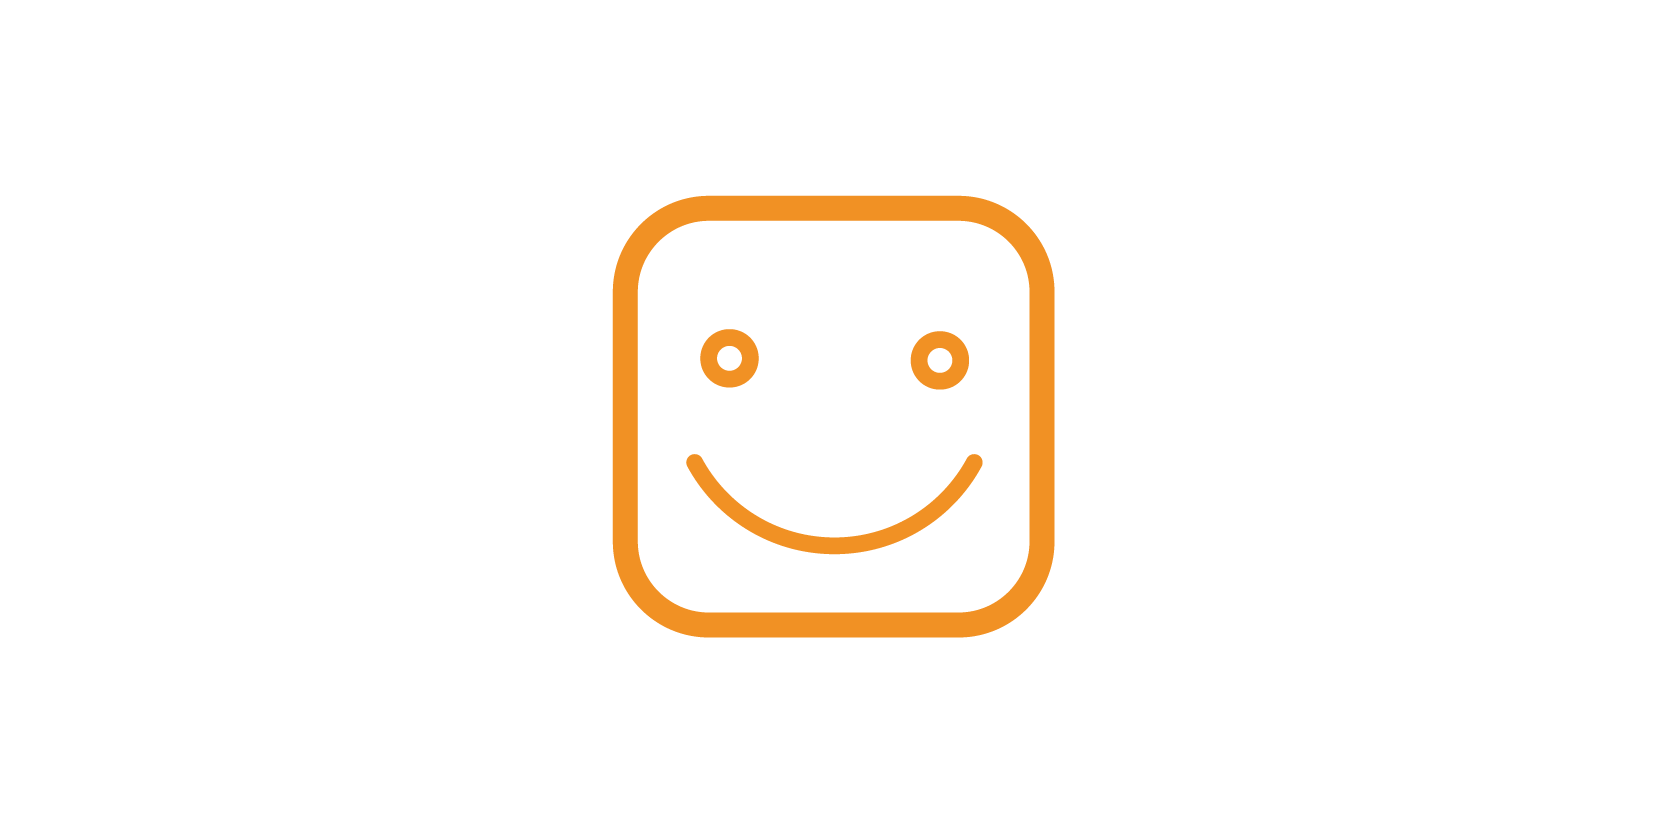 easy-to-use_white-orange-01.png